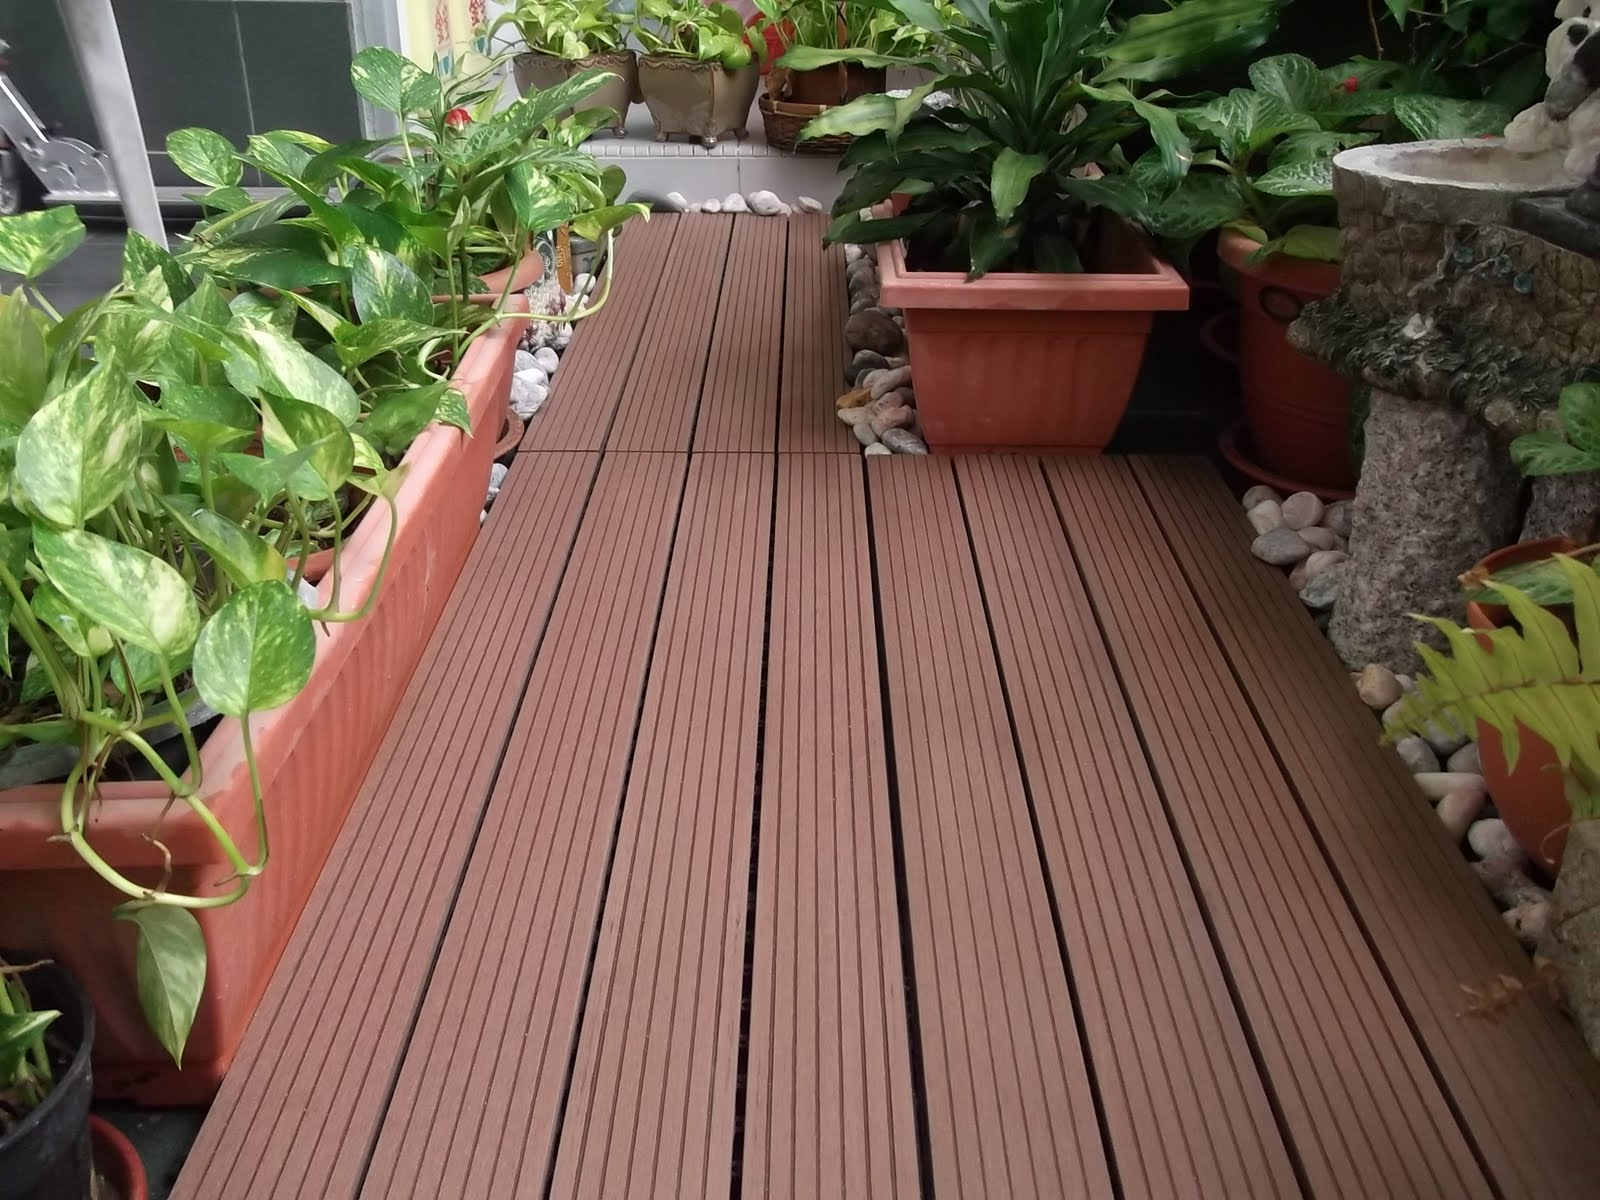 Holz Bodenbelag Balkon Singapore's Leading Supplier Of Outdoor Decking Flooring